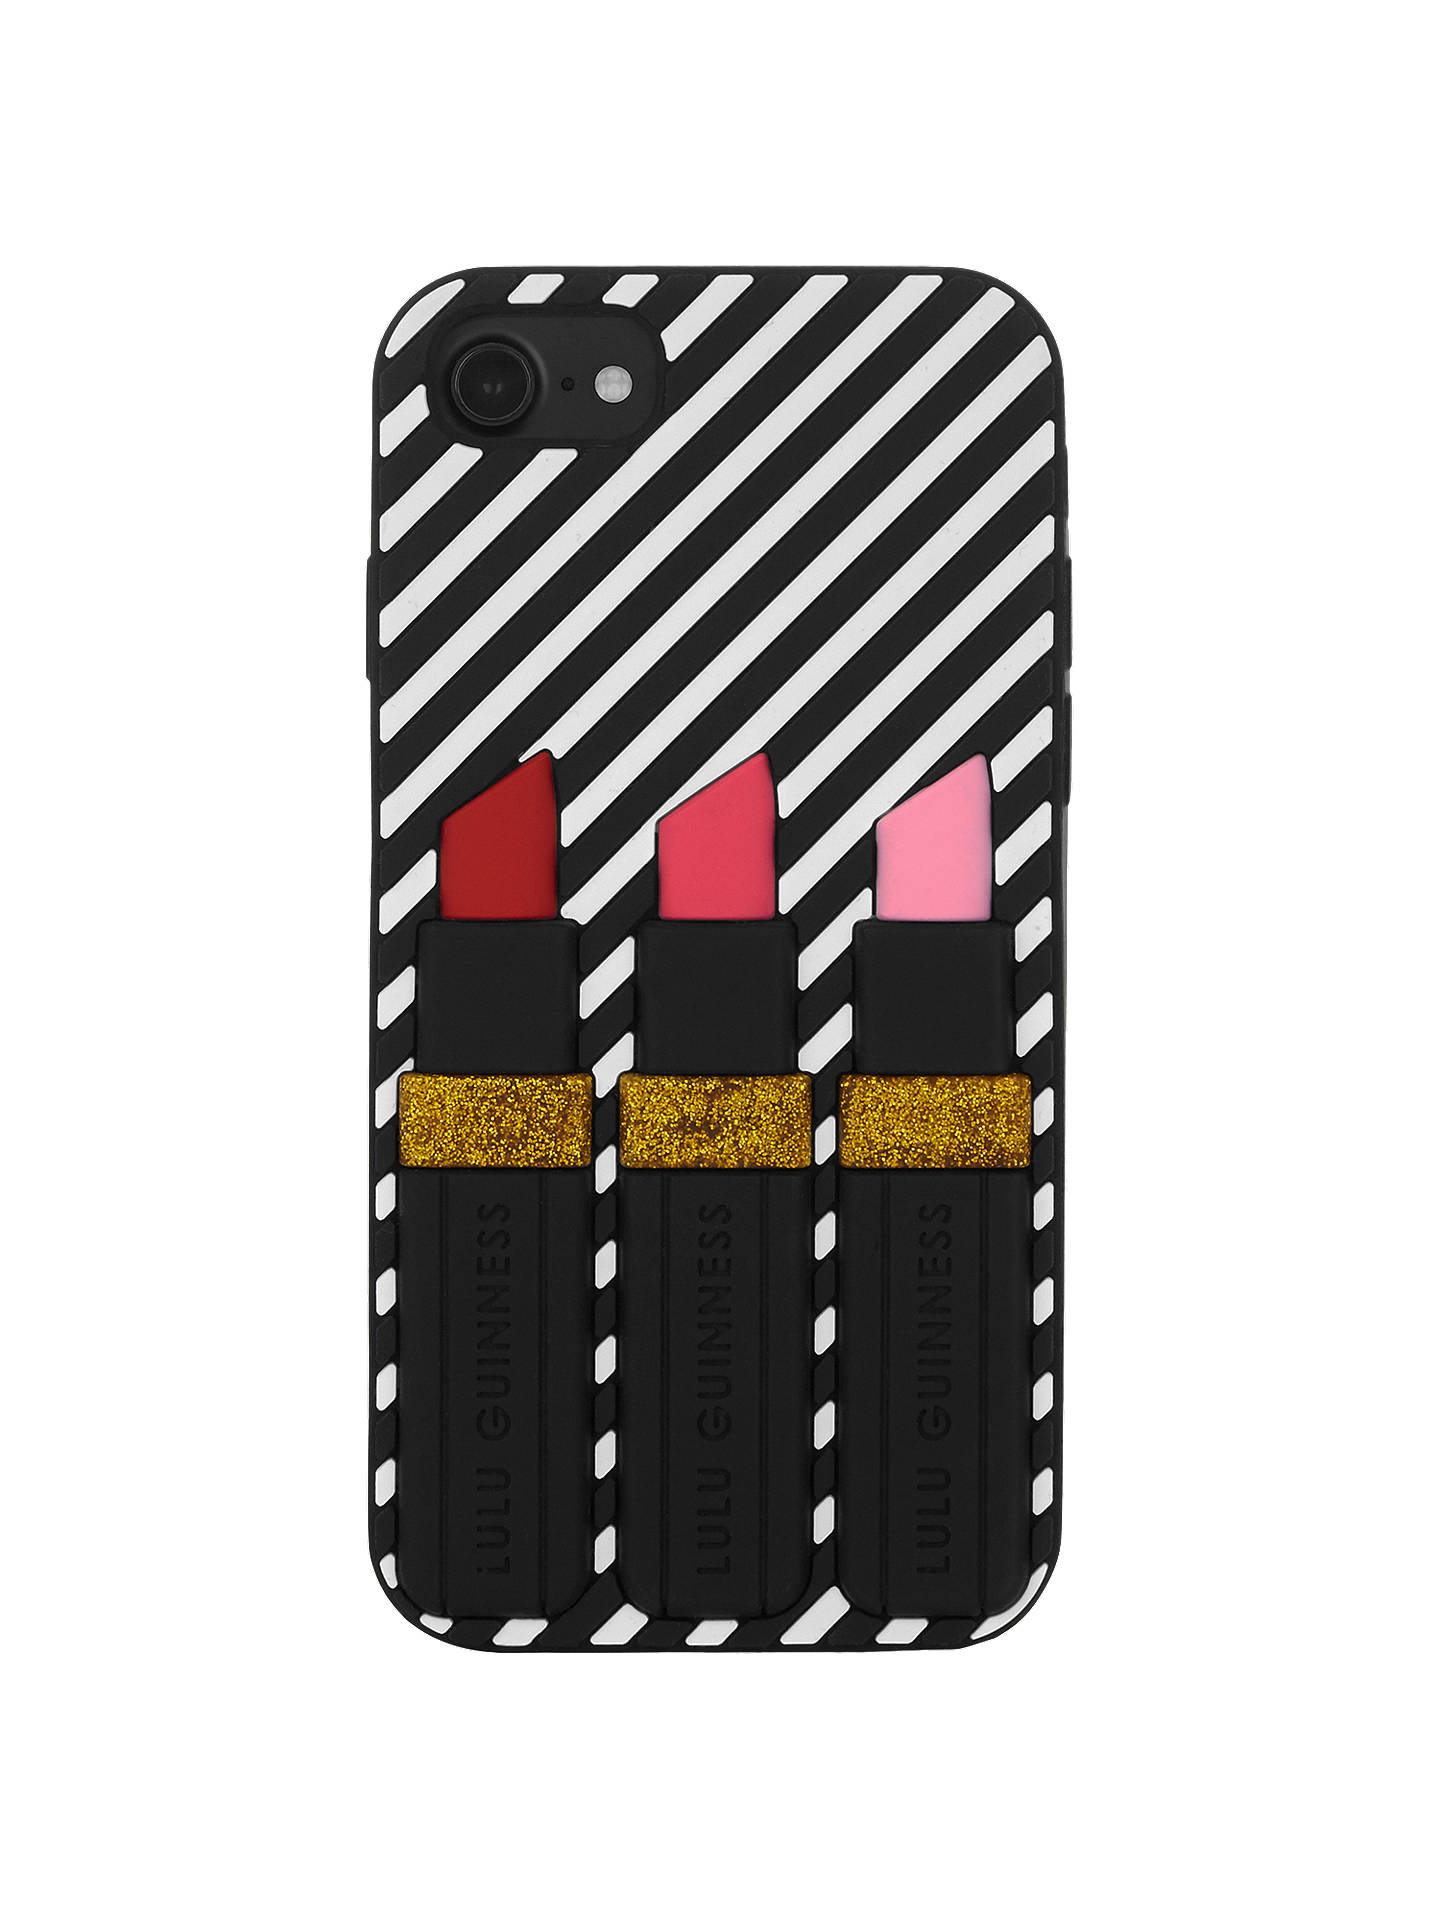 outlet store 0014c 14aed Lulu Guinness Lipstick iPhone 6/6s/7 Case, Mono